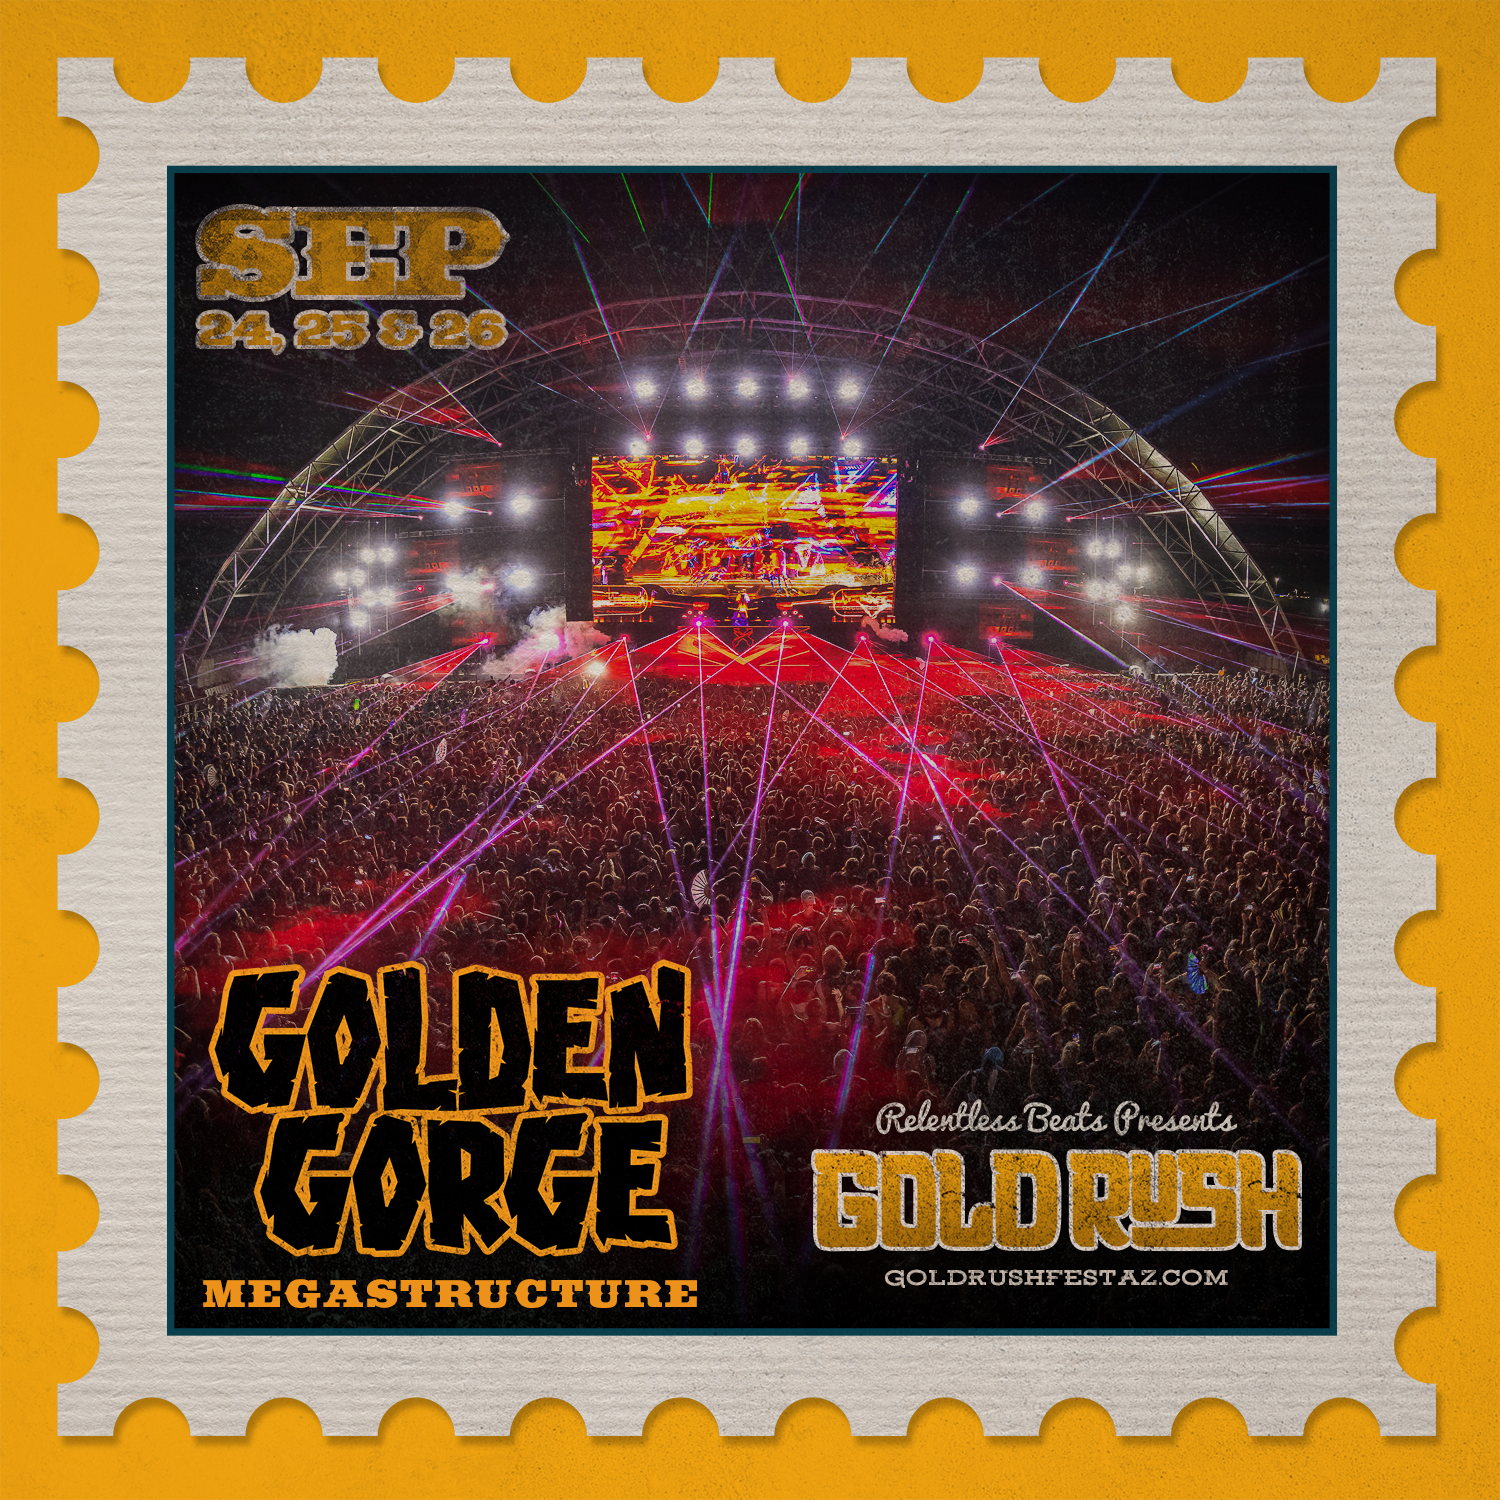 An image representing the Golden Gorge megastructure. Photo provided.